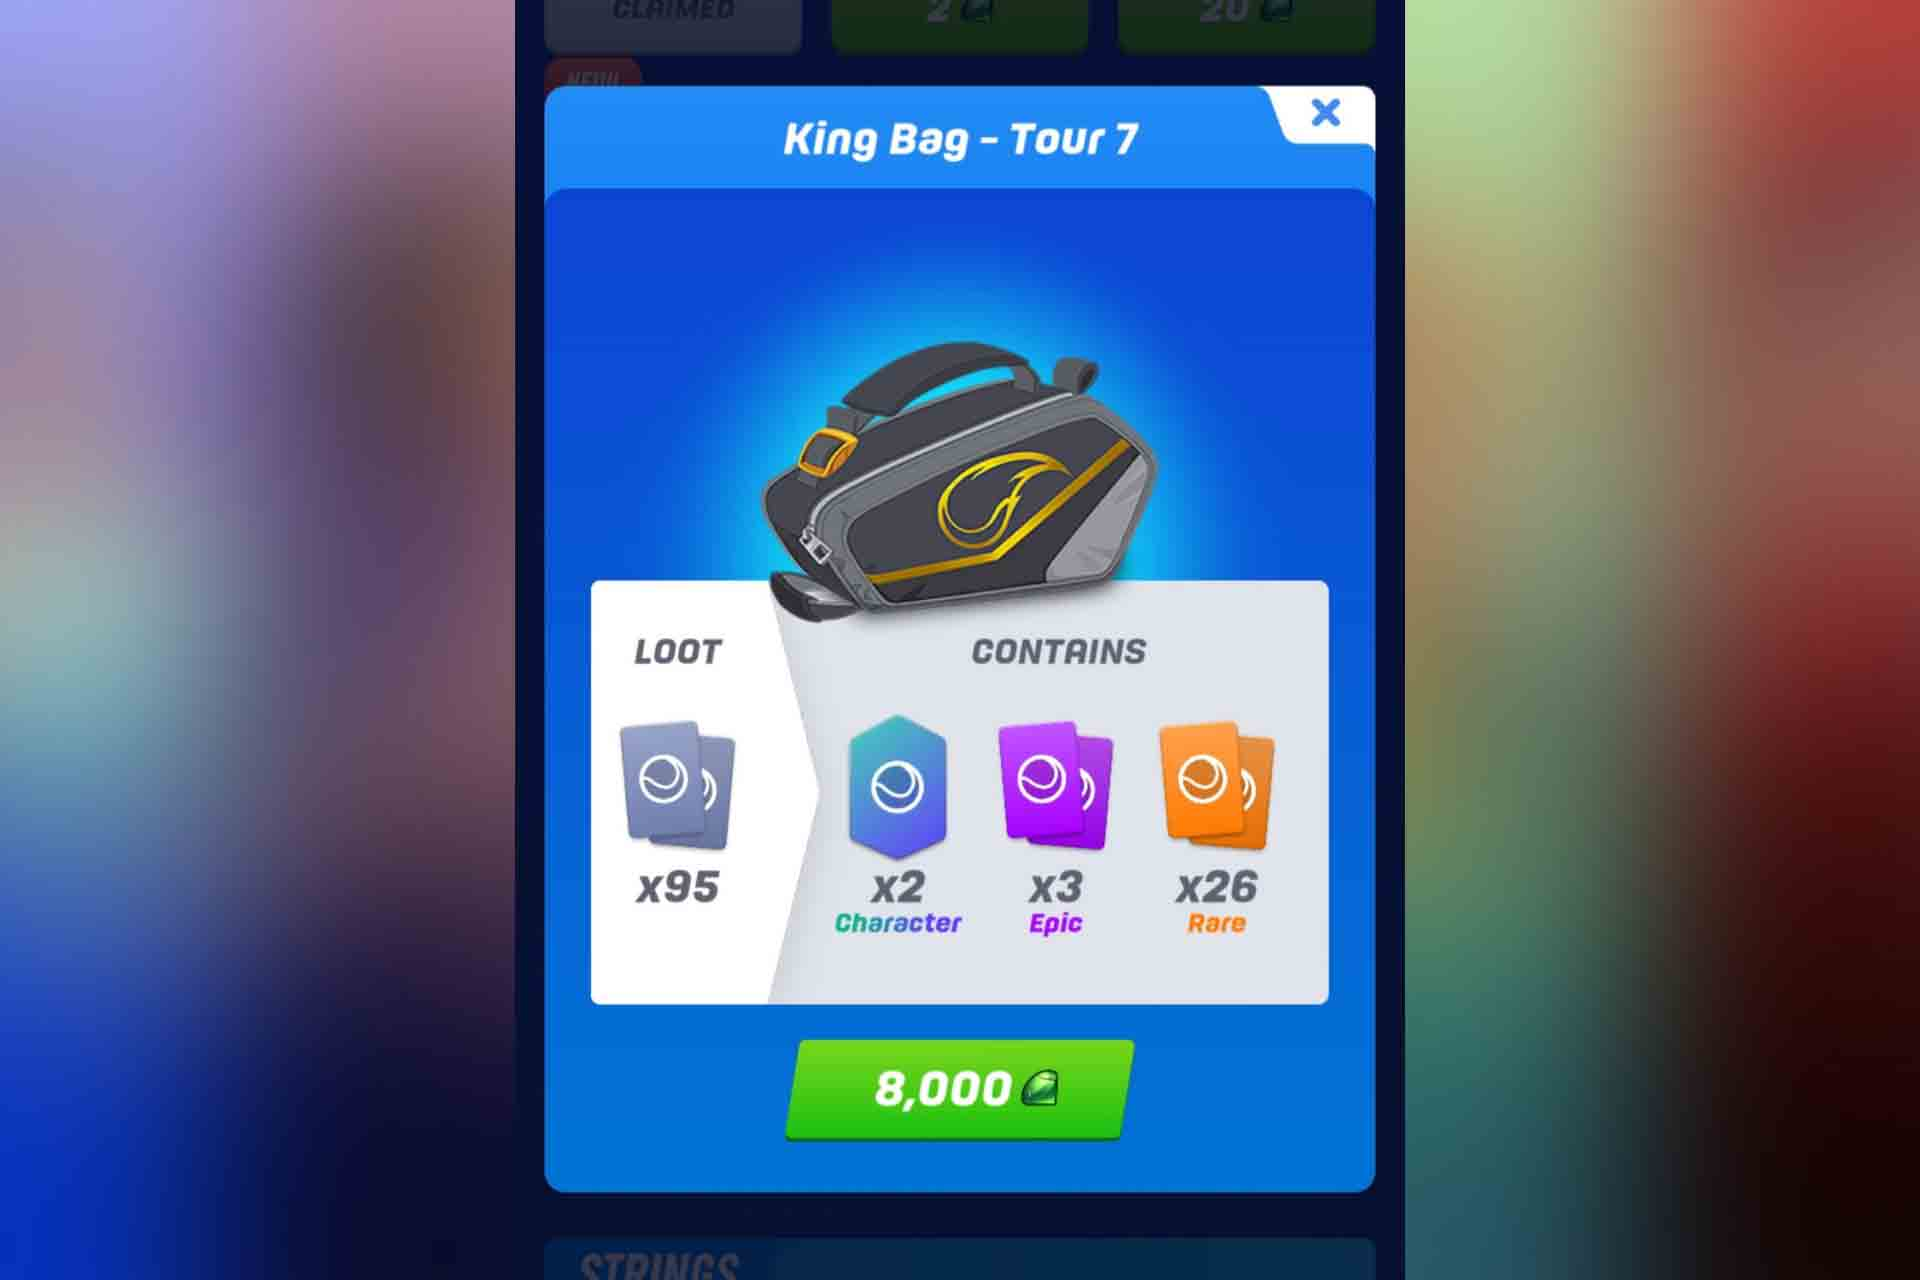 The King Bag in Tennis Clash game.